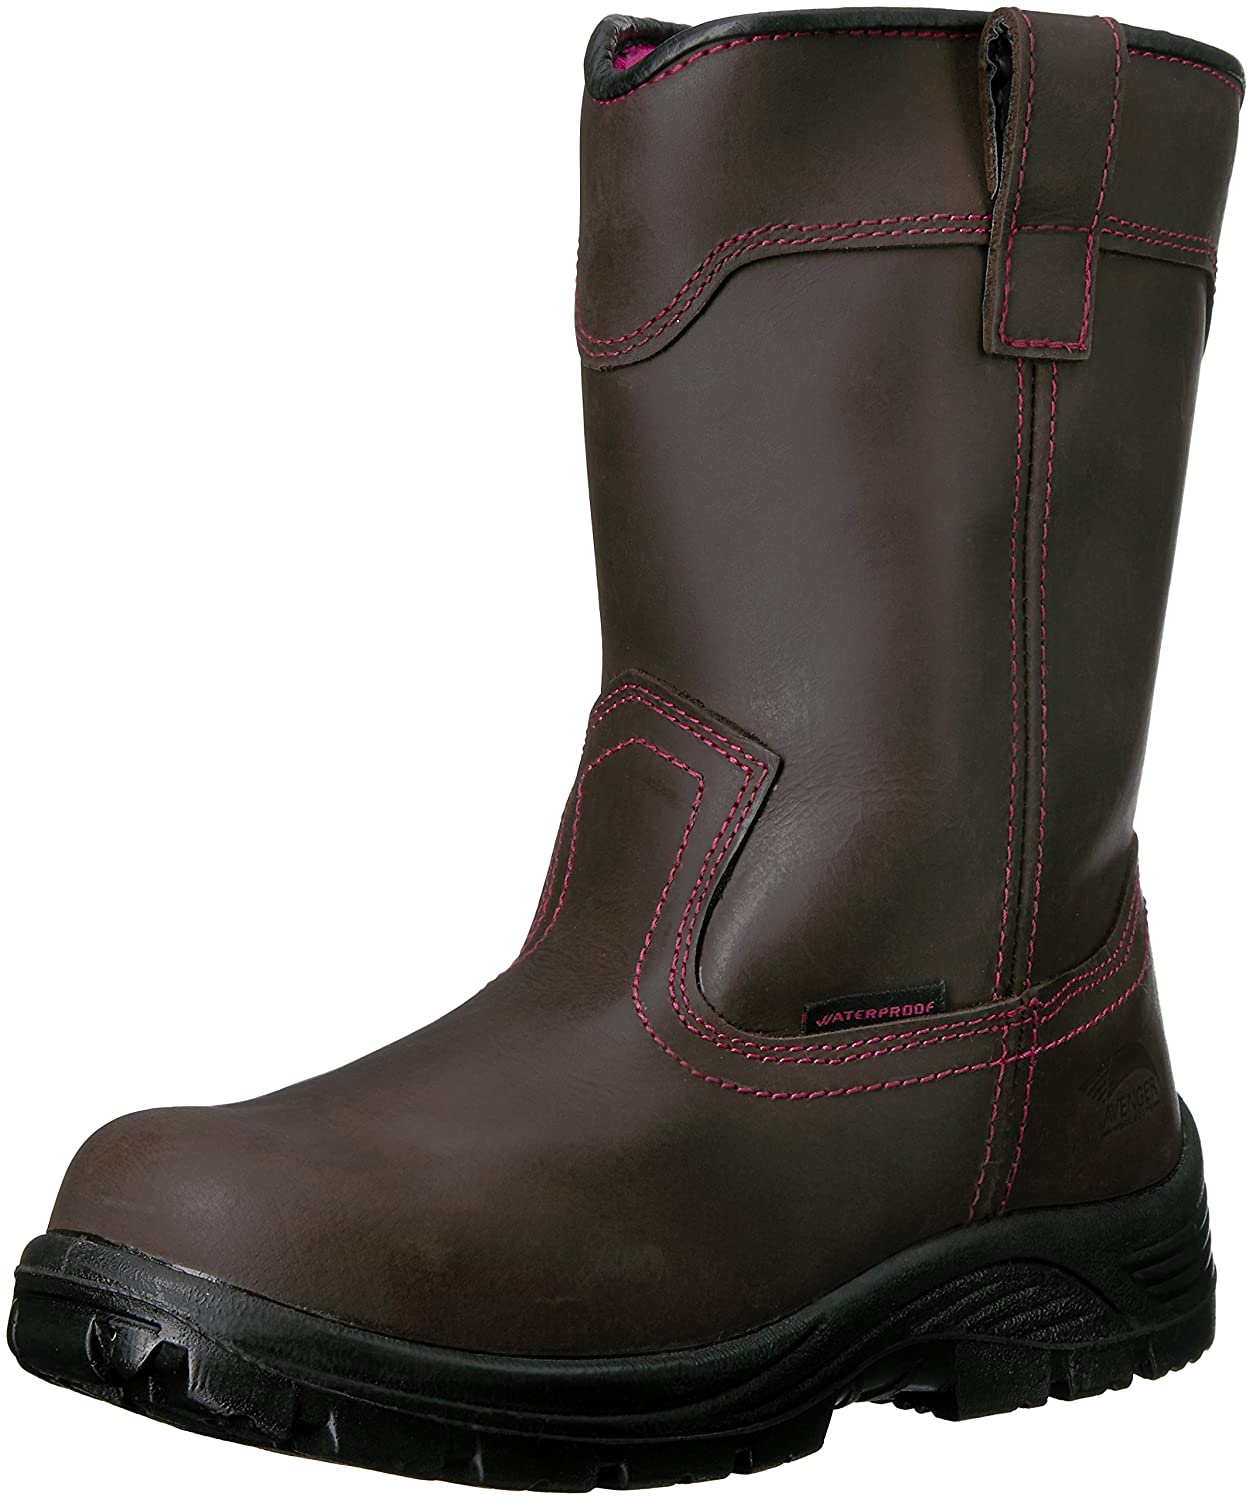 Avenger Safety Footwear Women's 7146 Comp Toe Waterproof Pull on EH Work Boot Industrial and Construction Shoe B00ZDPI13K 9 2E US|Brown